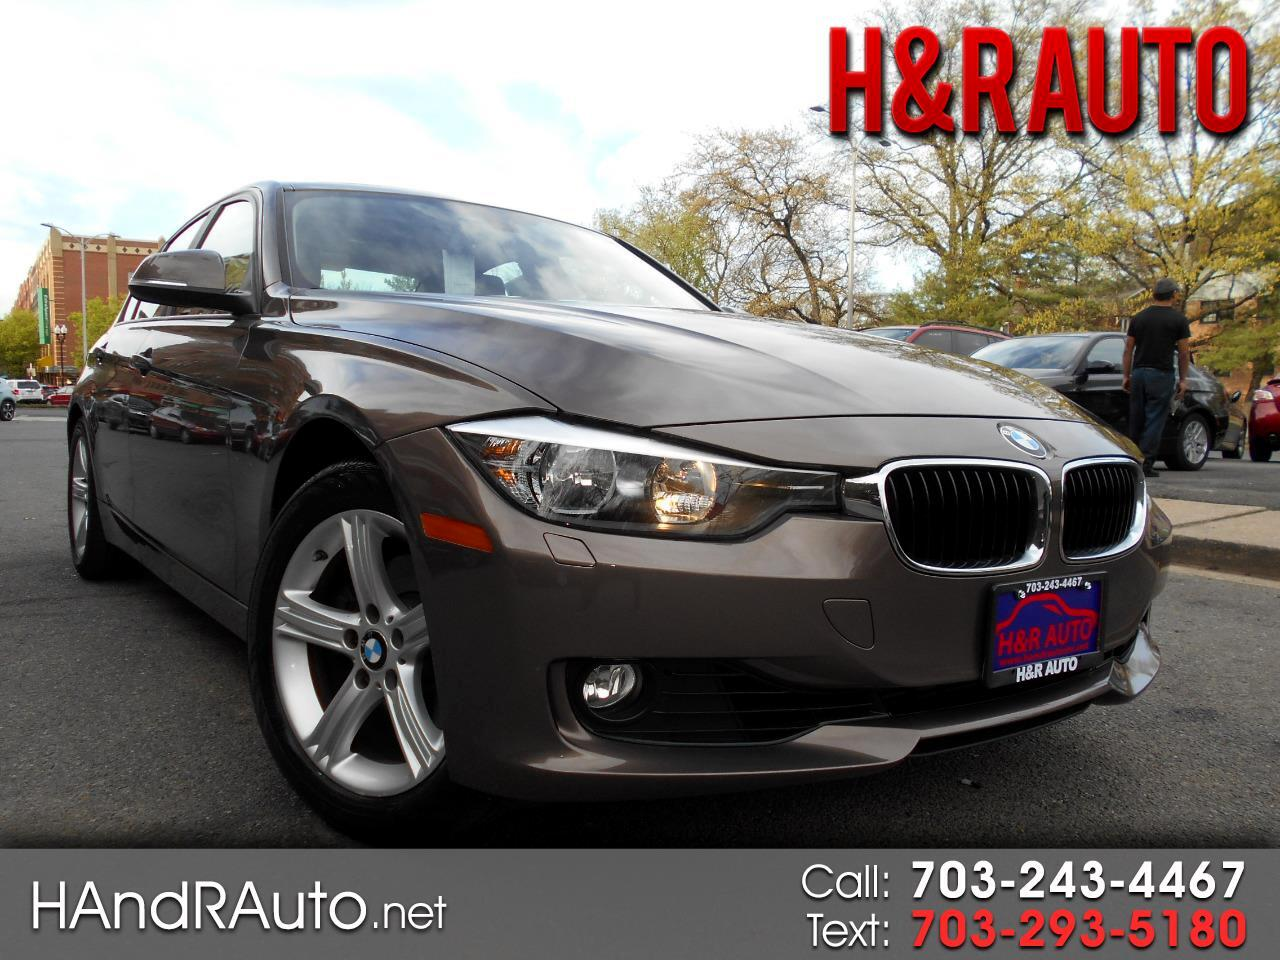 2013 BMW 3 Series 4dr Sdn 328i xDrive AWD South Africa